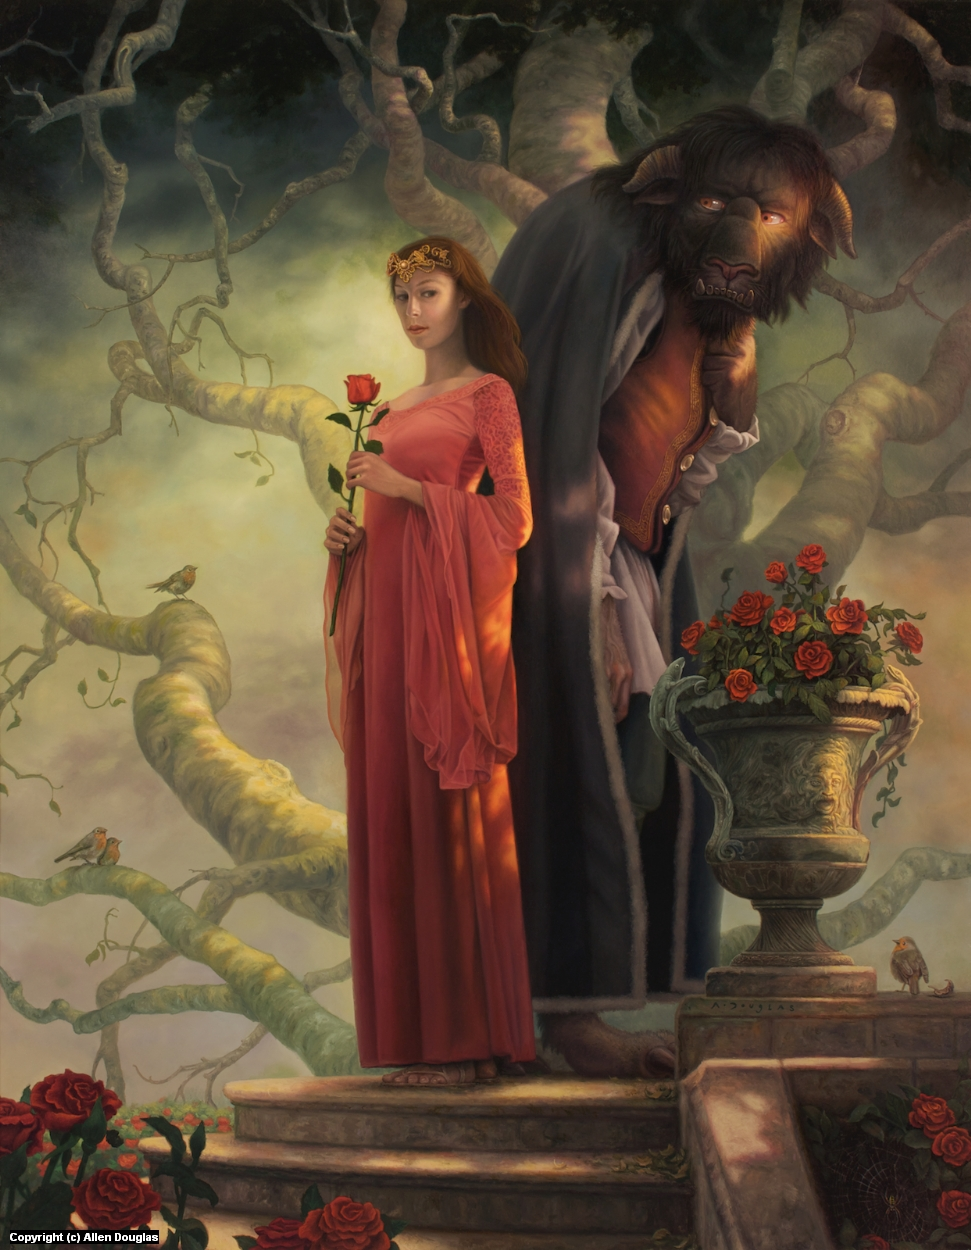 Beauty and the Beast Artwork by Allen Douglas